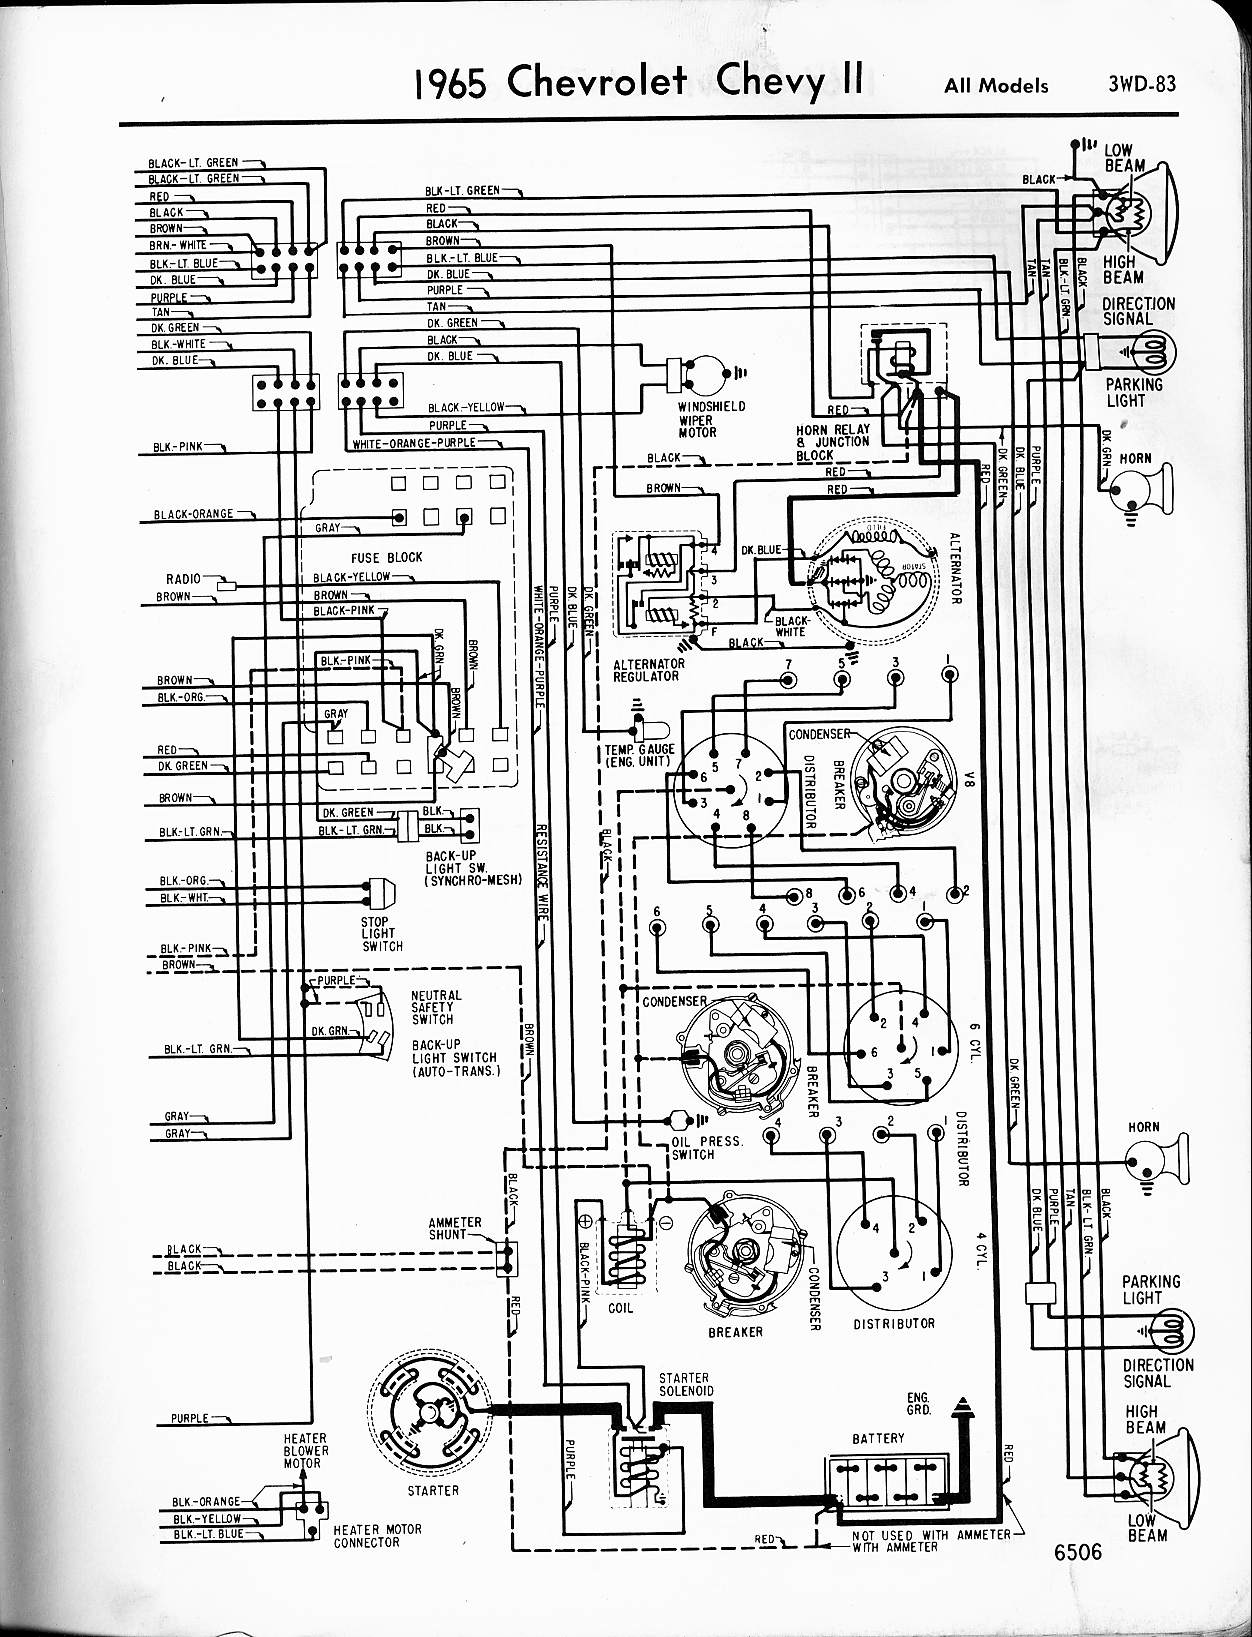 MWireChev65_3WD 083 chevy wiring diagrams wiring diagram data